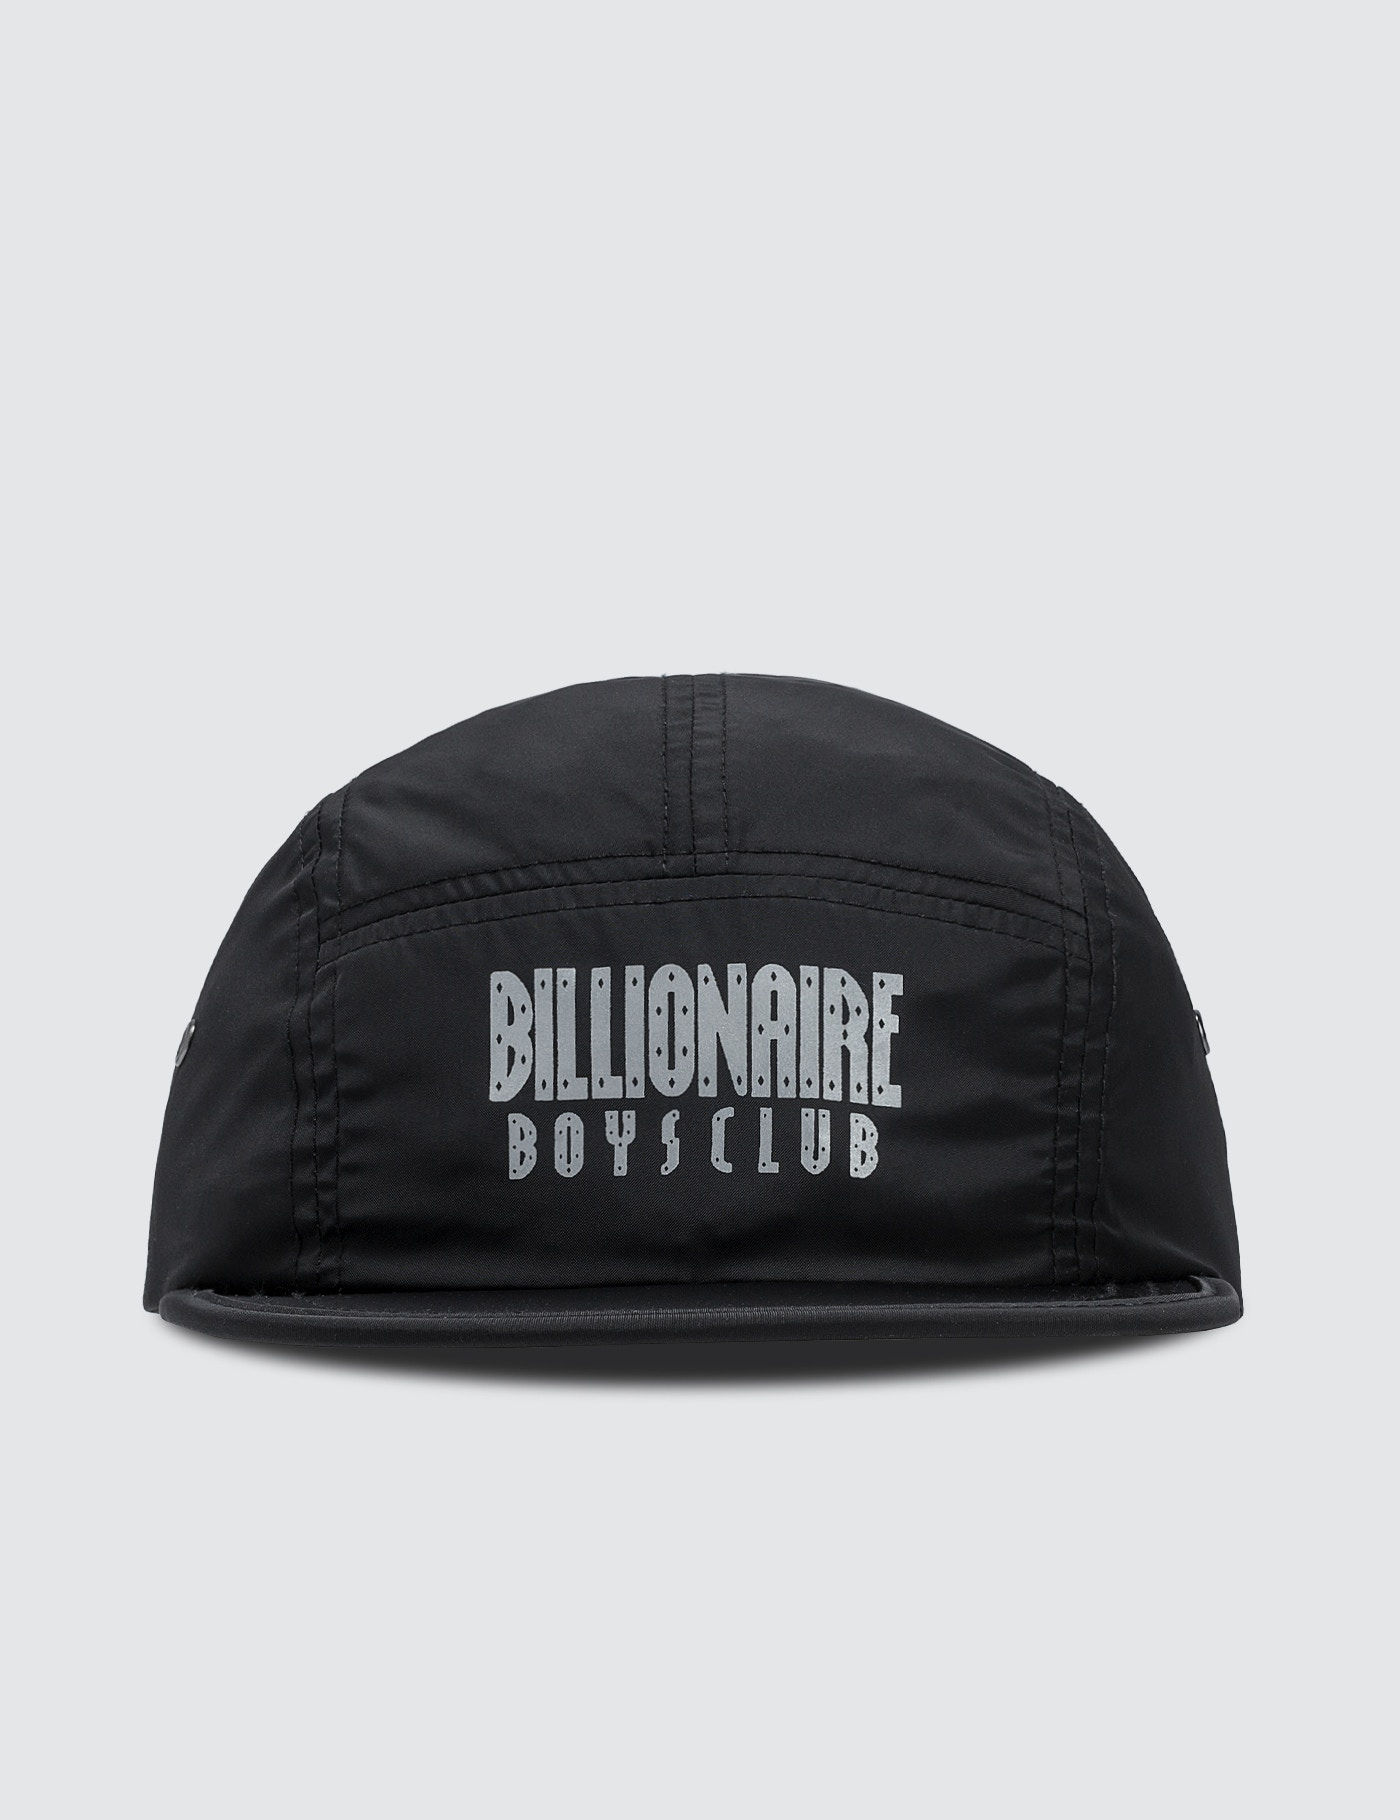 9321a1612b6e3 Jual Billionaire Boys Club Reflective Logo 5 Panel Cap - 100 ...